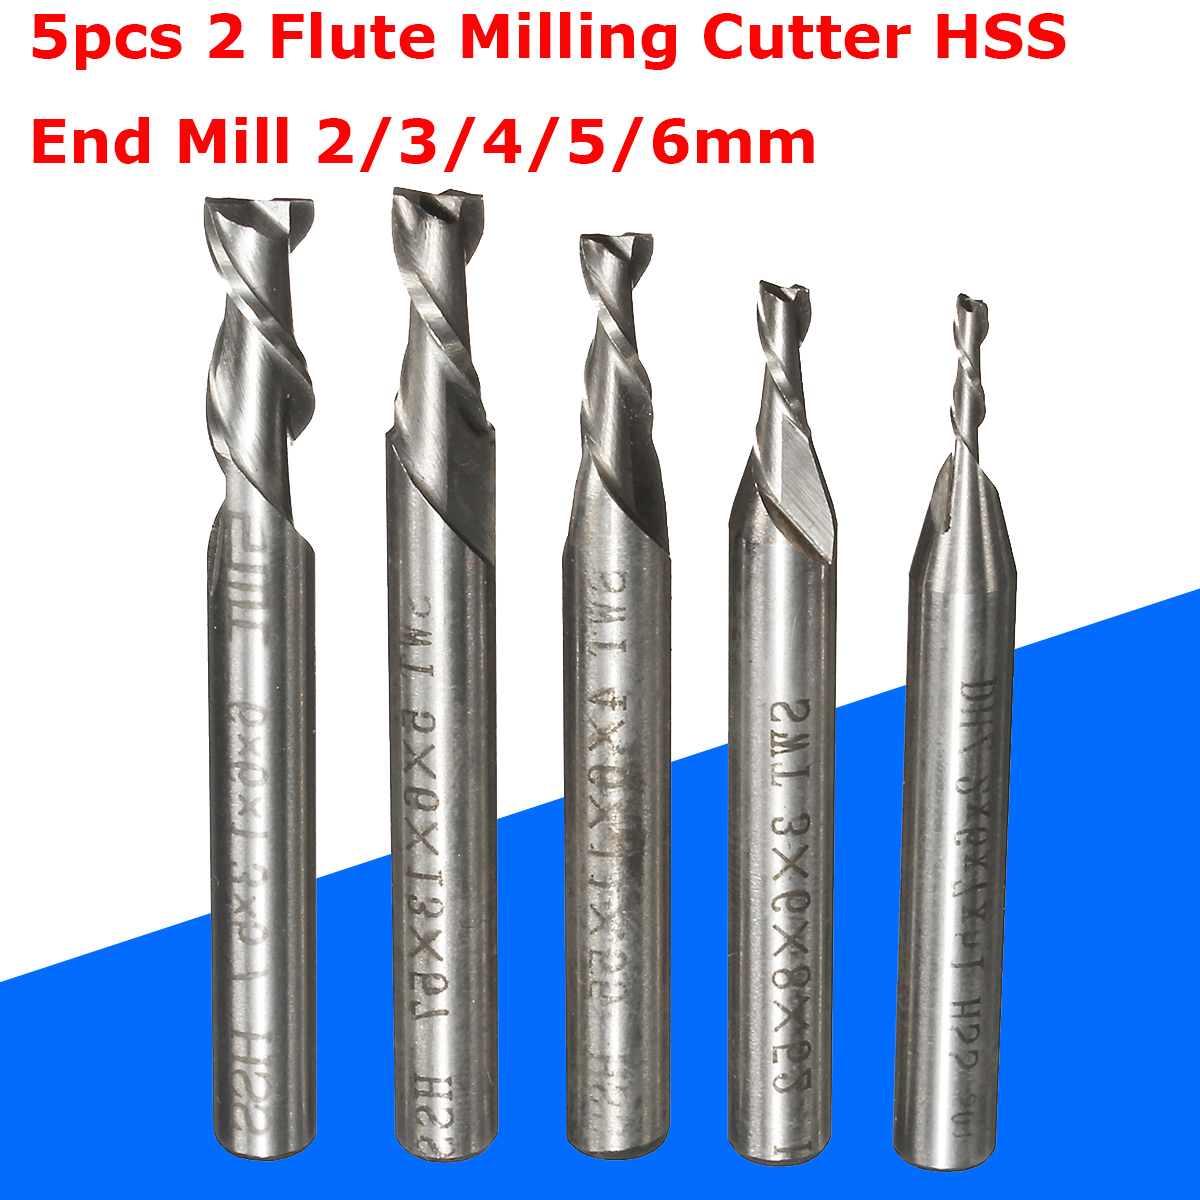 5pcs 2 Flute Milling Cutter HSS End Mill 2/3/4/5/6mm CNC Engraving Bit Straight Shank Drill Bit Tools